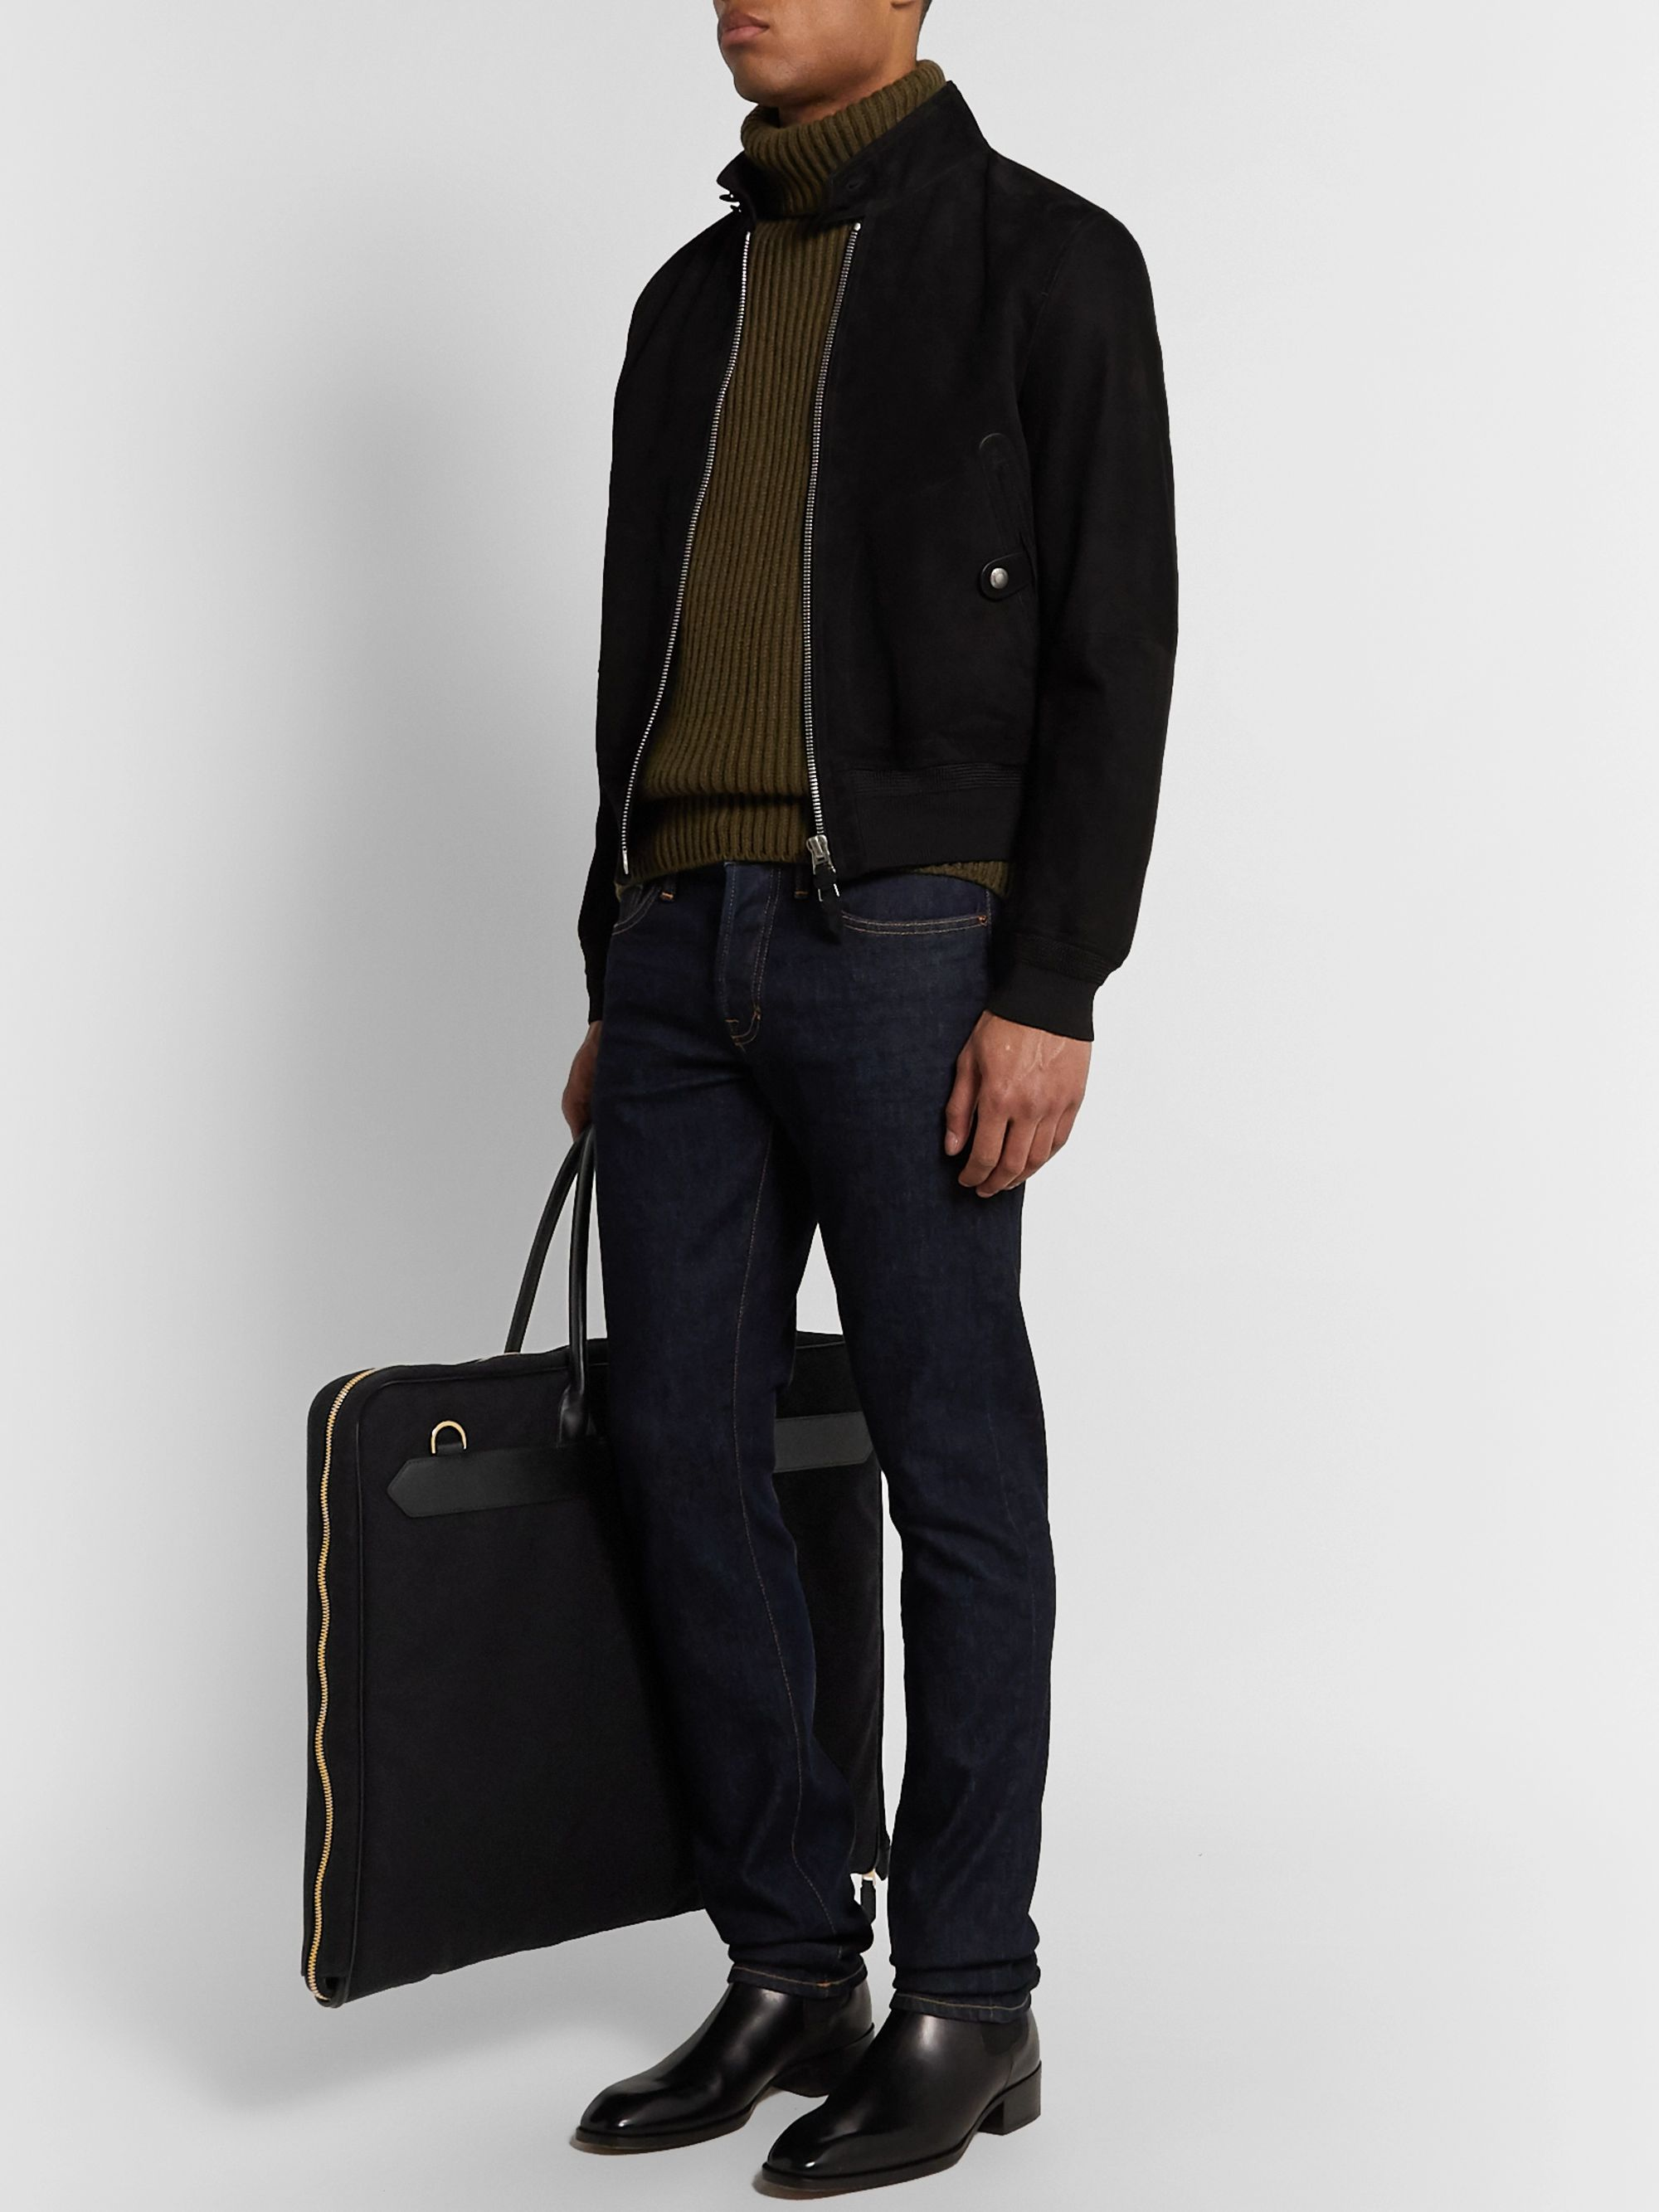 TOM FORD Leather-Trimmed Canvas Garment Bag